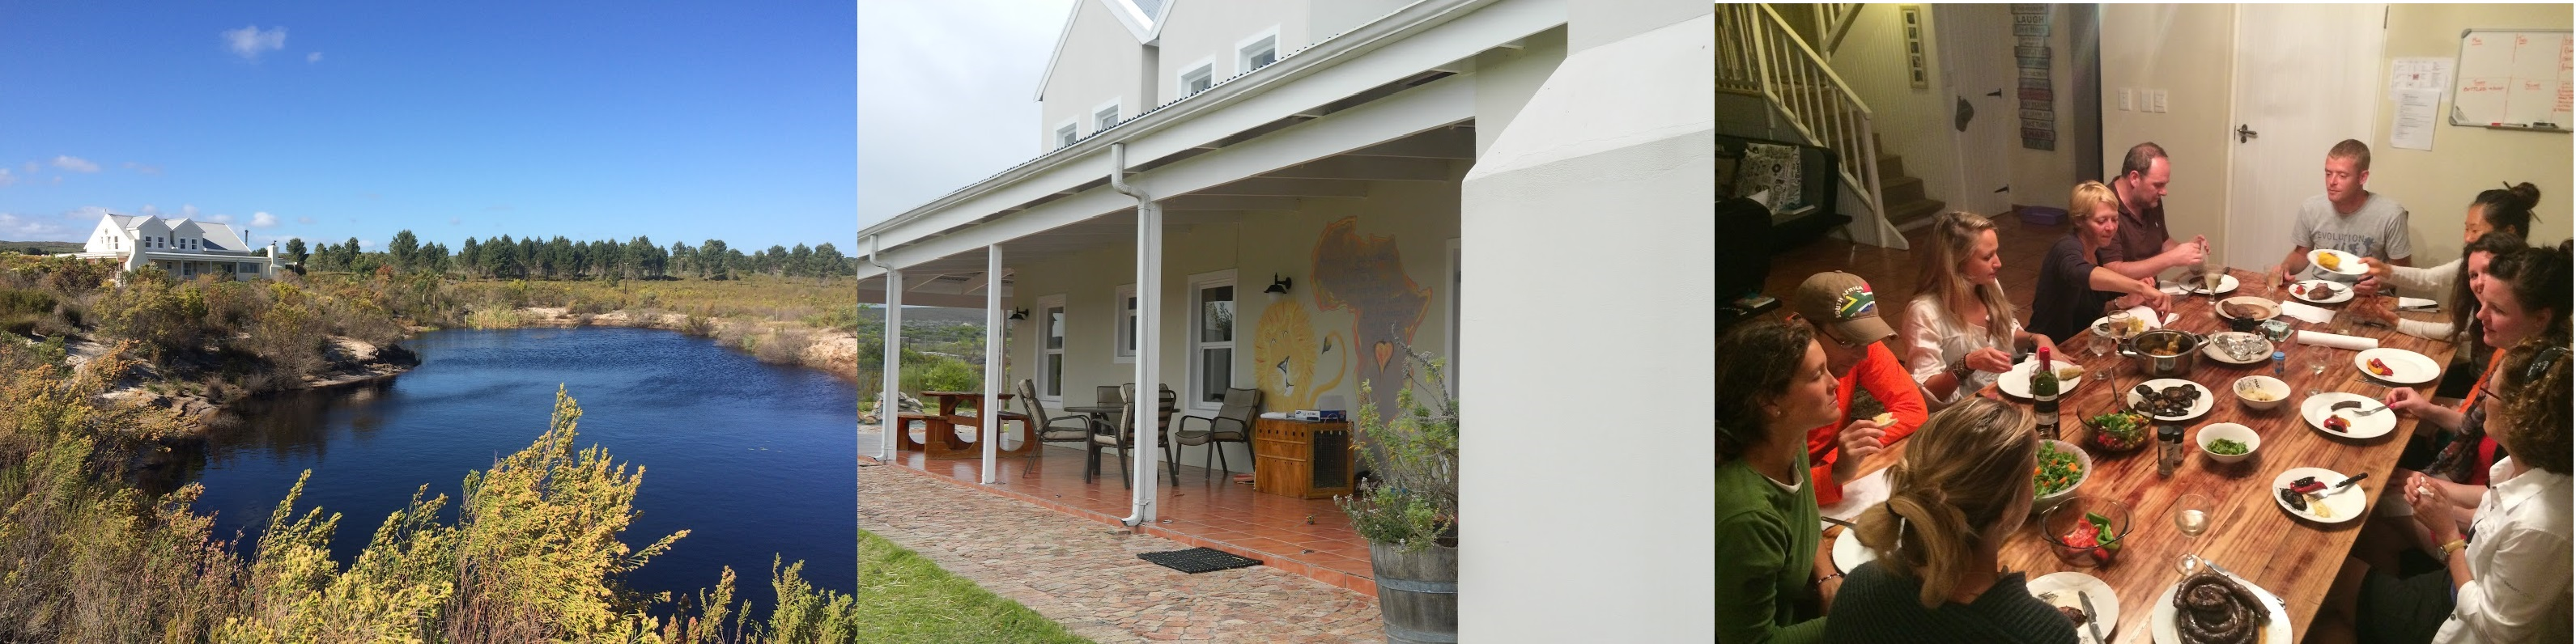 Accommodation at the volunteering project in South Africa